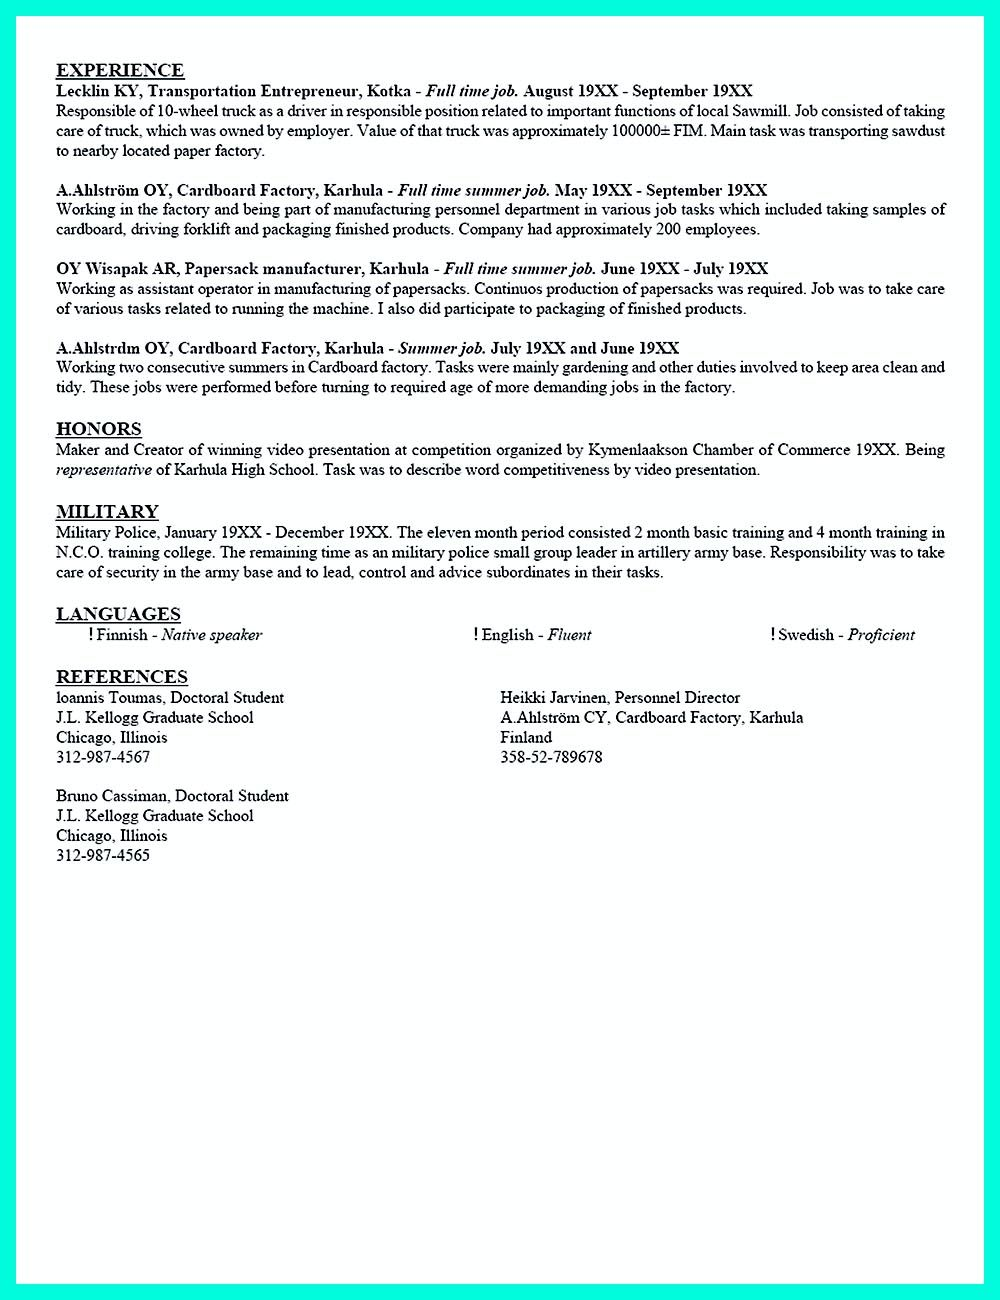 Current College Student Resume Current College Student Resume Is Designed For Fresh Graduate